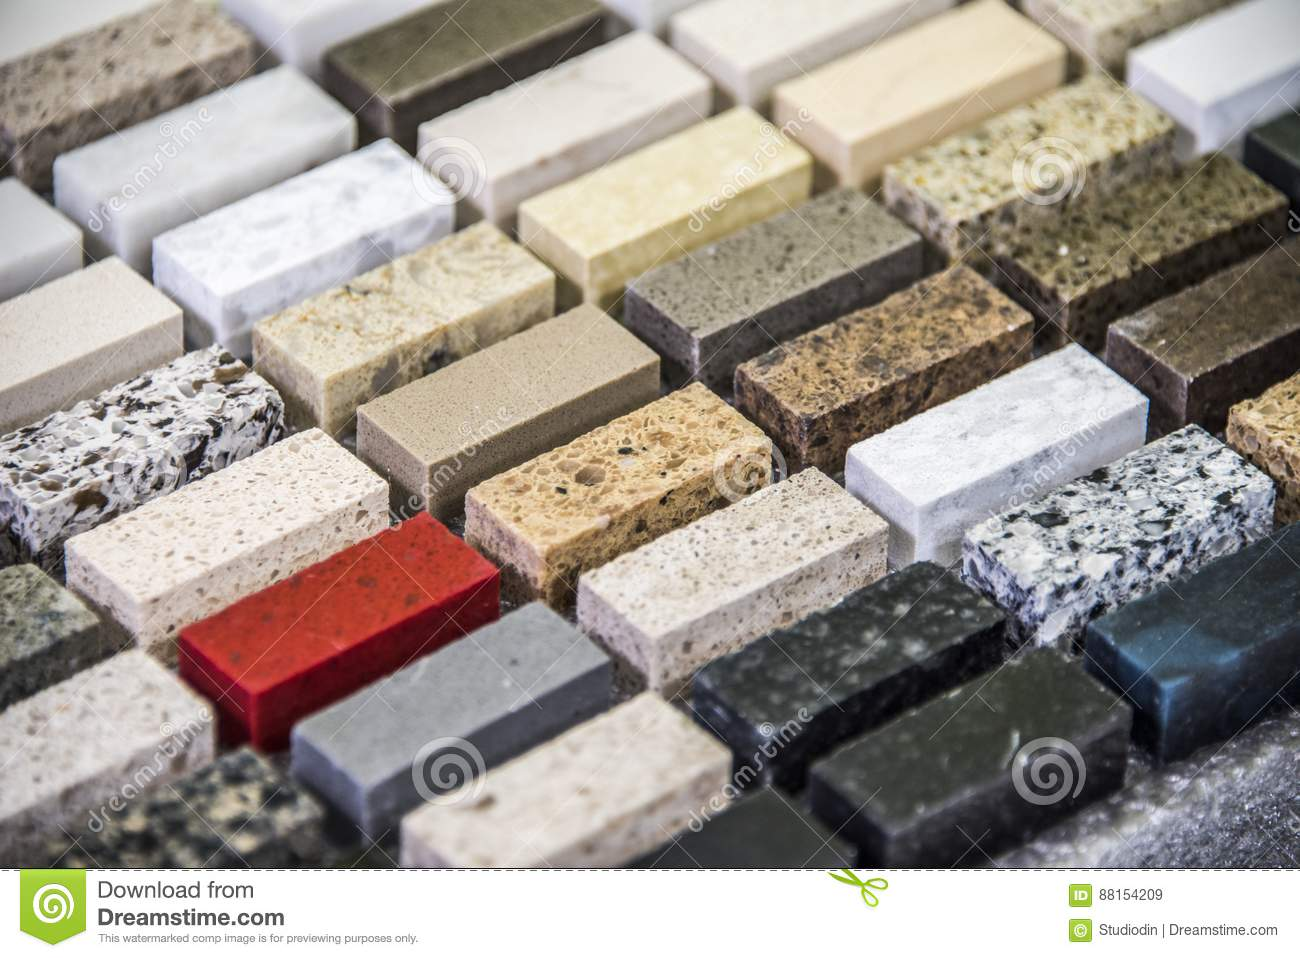 Beautiful stone color selection for kitchen counter tops. Kitchen renovation concept.